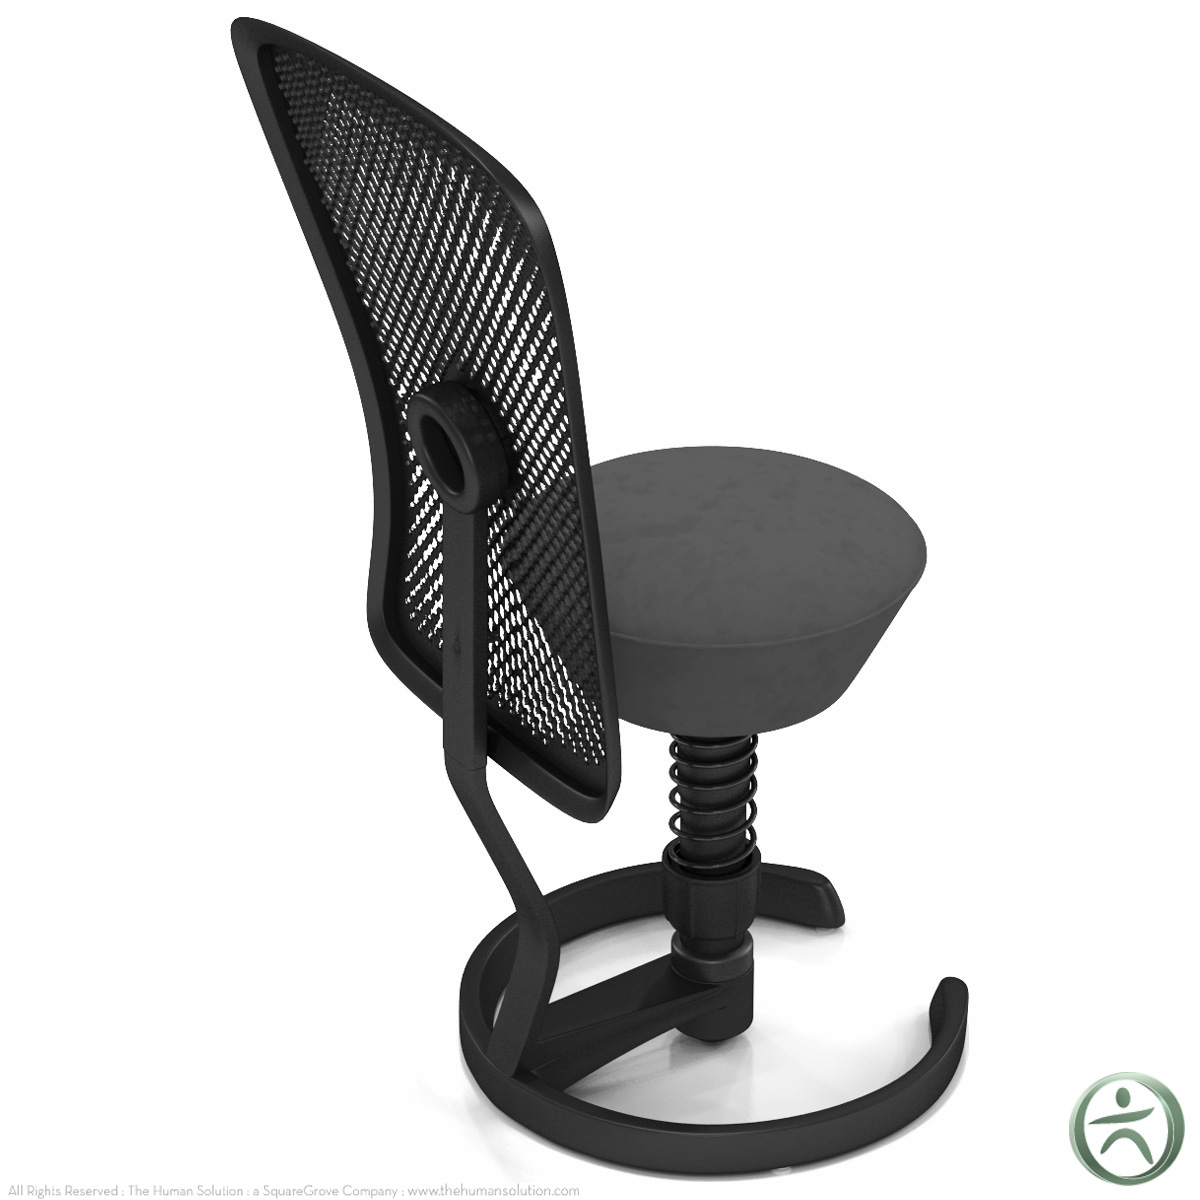 Swopper Chair Special Edition Shop Swopper Chairs Swopper Chair - Design Your Own | Shop Swopper Chairs